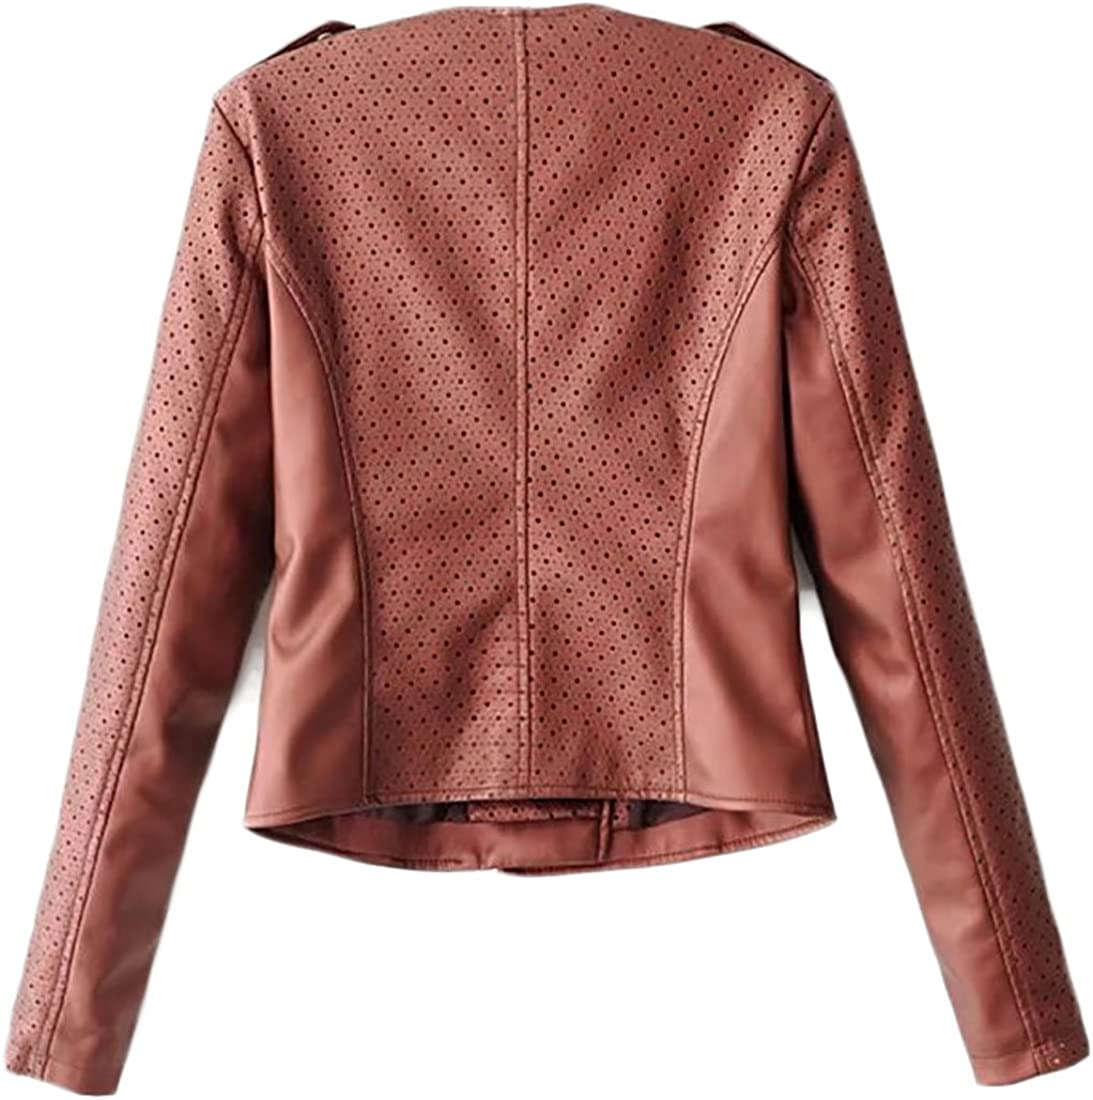 KXP Womens Oblique Zip Faux Leather Motorcyle Short Jacket Coat Wine Red Small